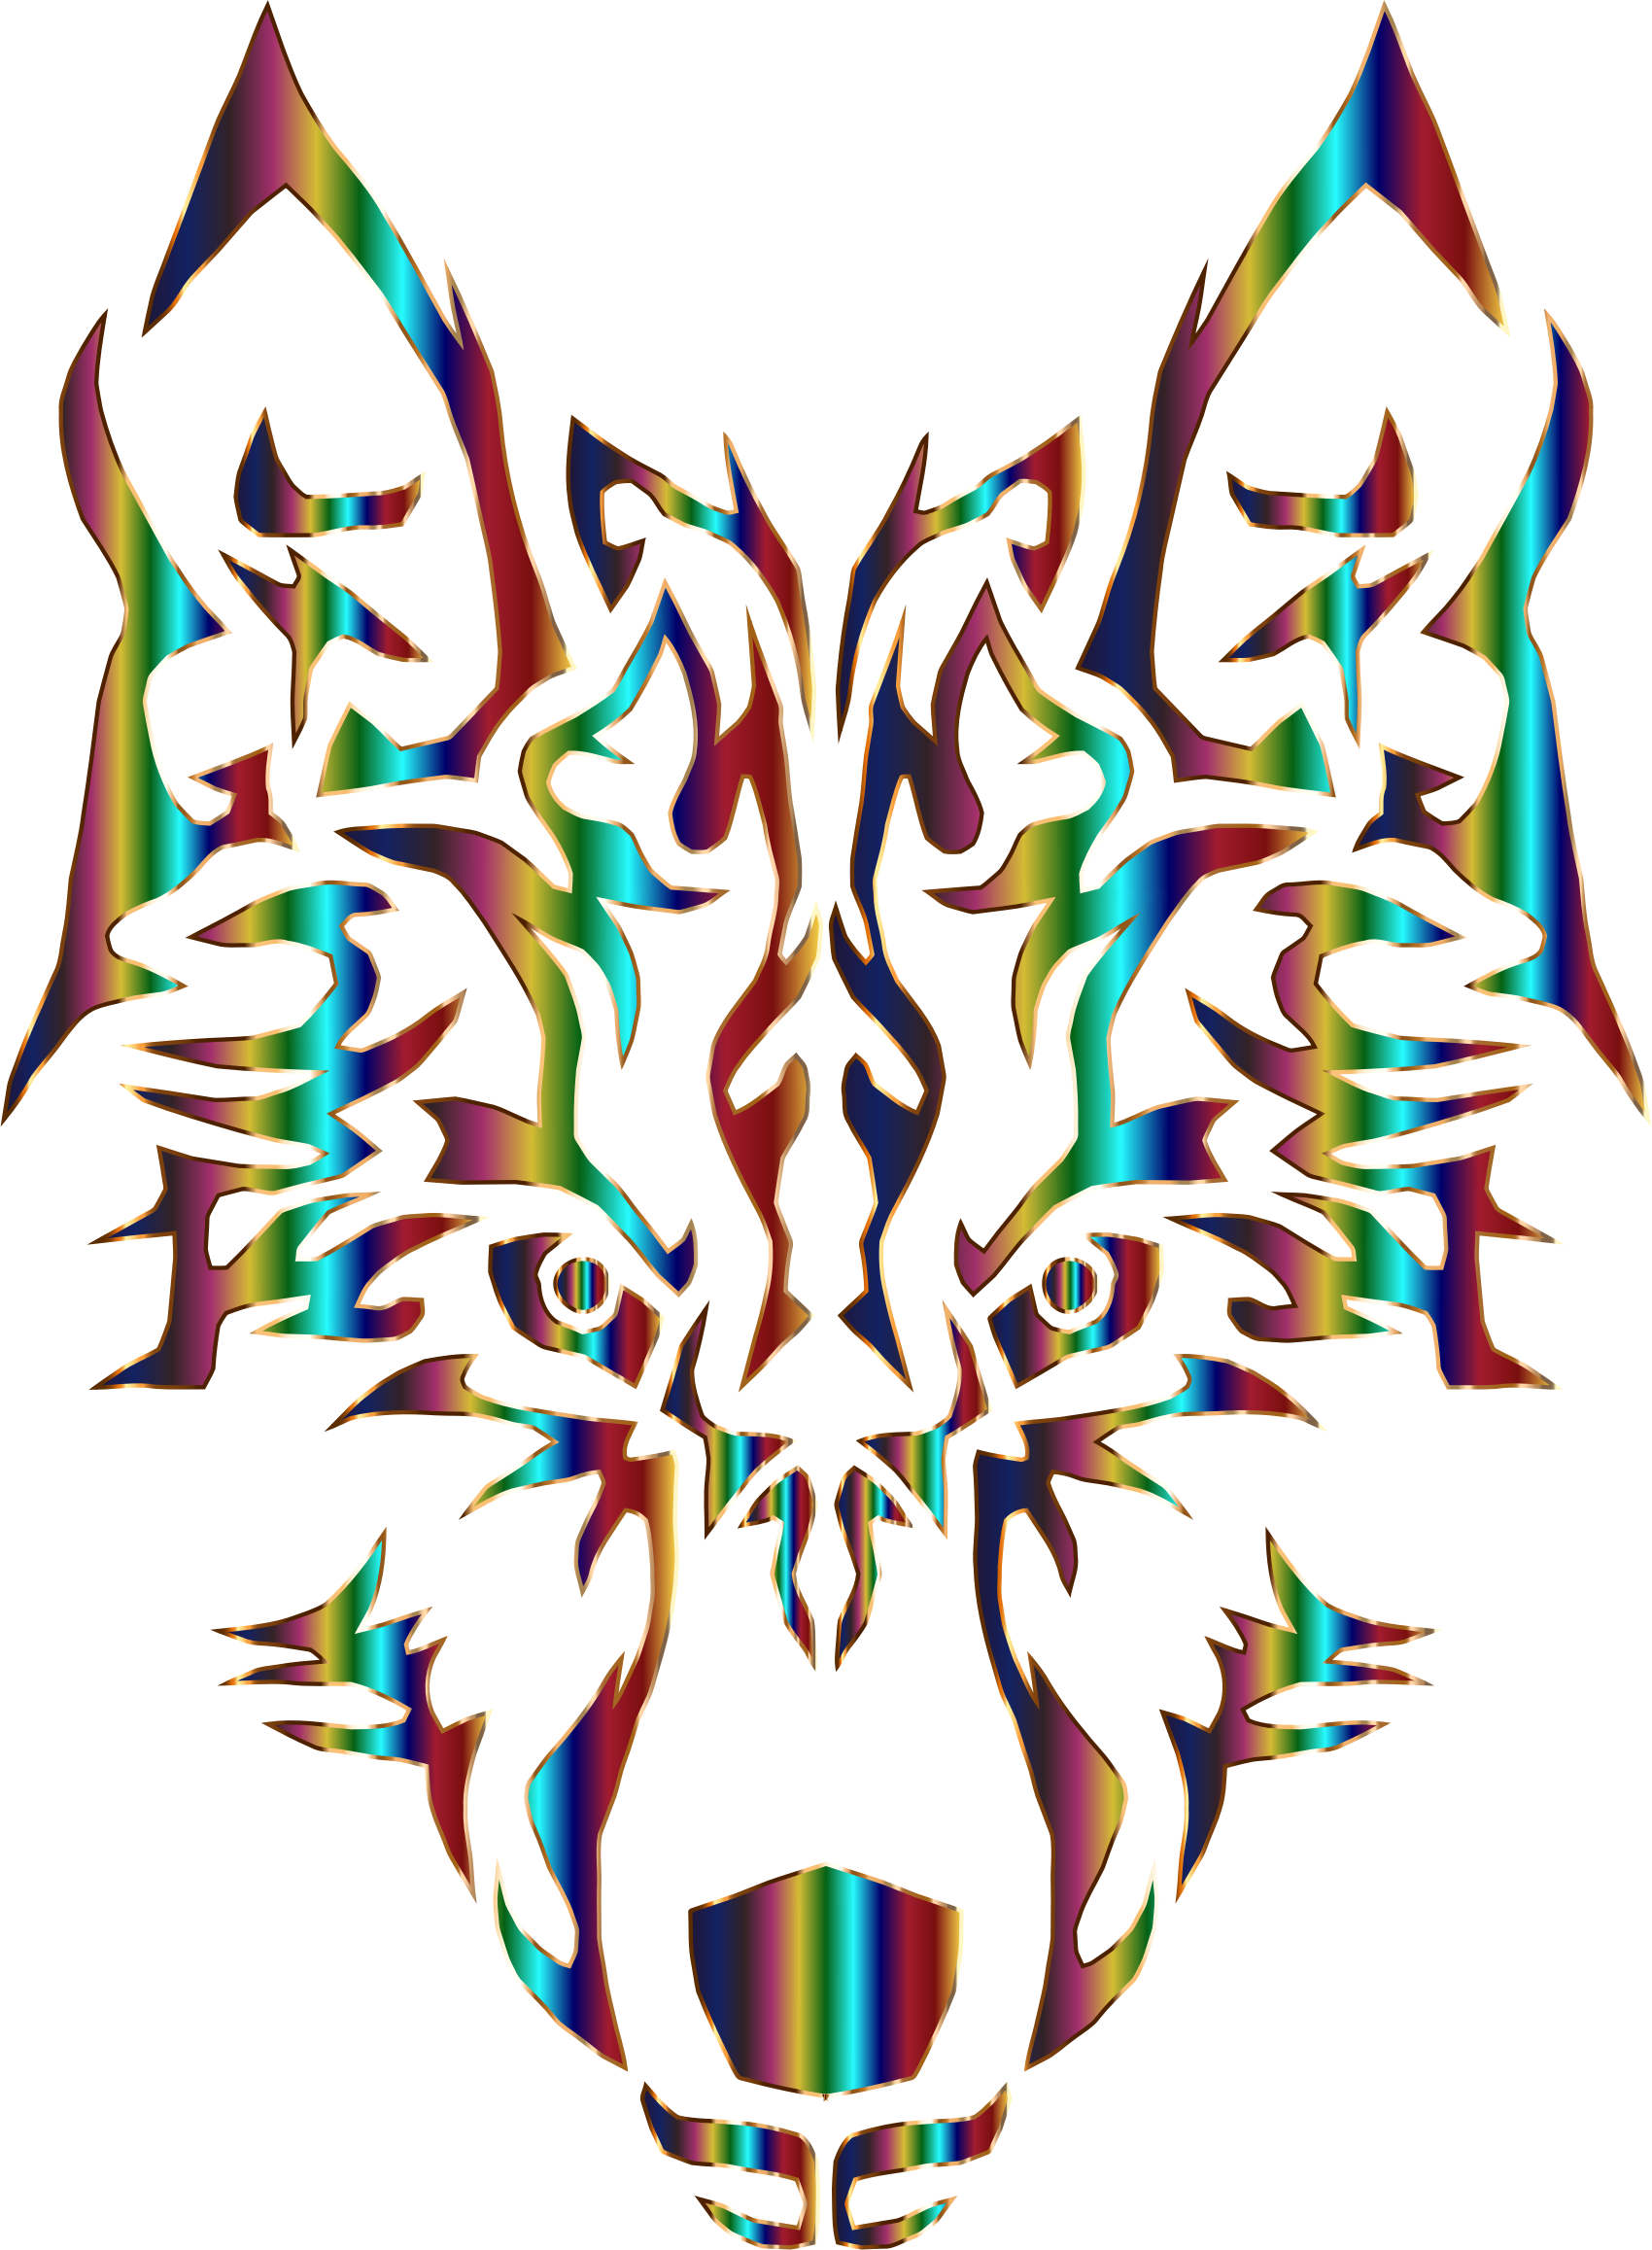 Wolves clipart vector. Chromatic symmetric tribal wolf